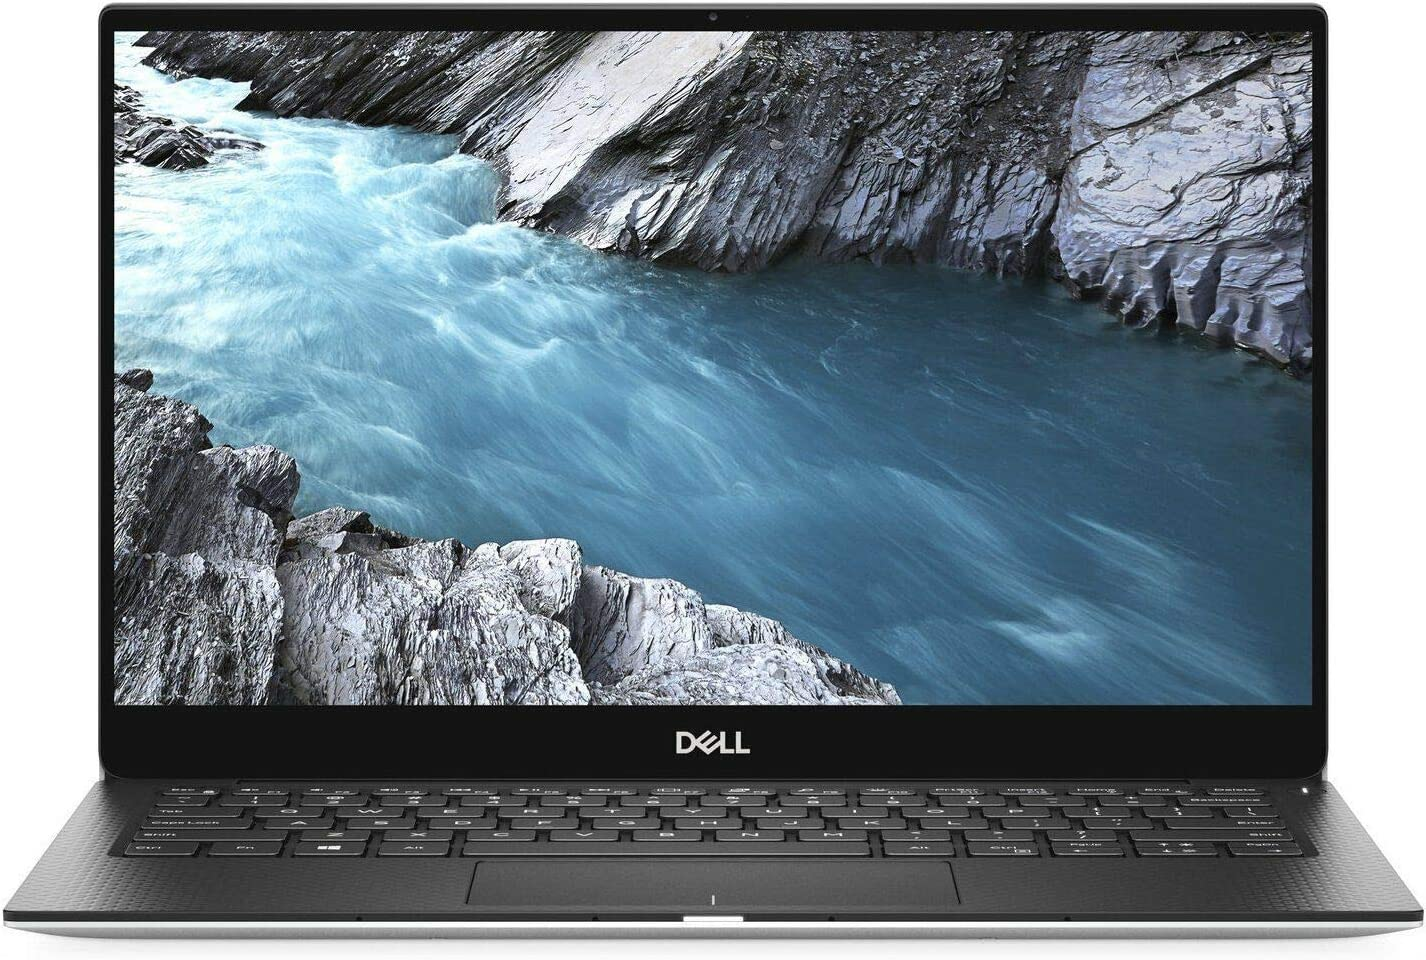 "Dell XPS 9380 Laptop, 13.3"" FHD (1920x1080), Intel Core 8th Gen i7-8565U, 8GB RAM, 256GB Solid State Drive, Windows 10 Home (Renewed)"